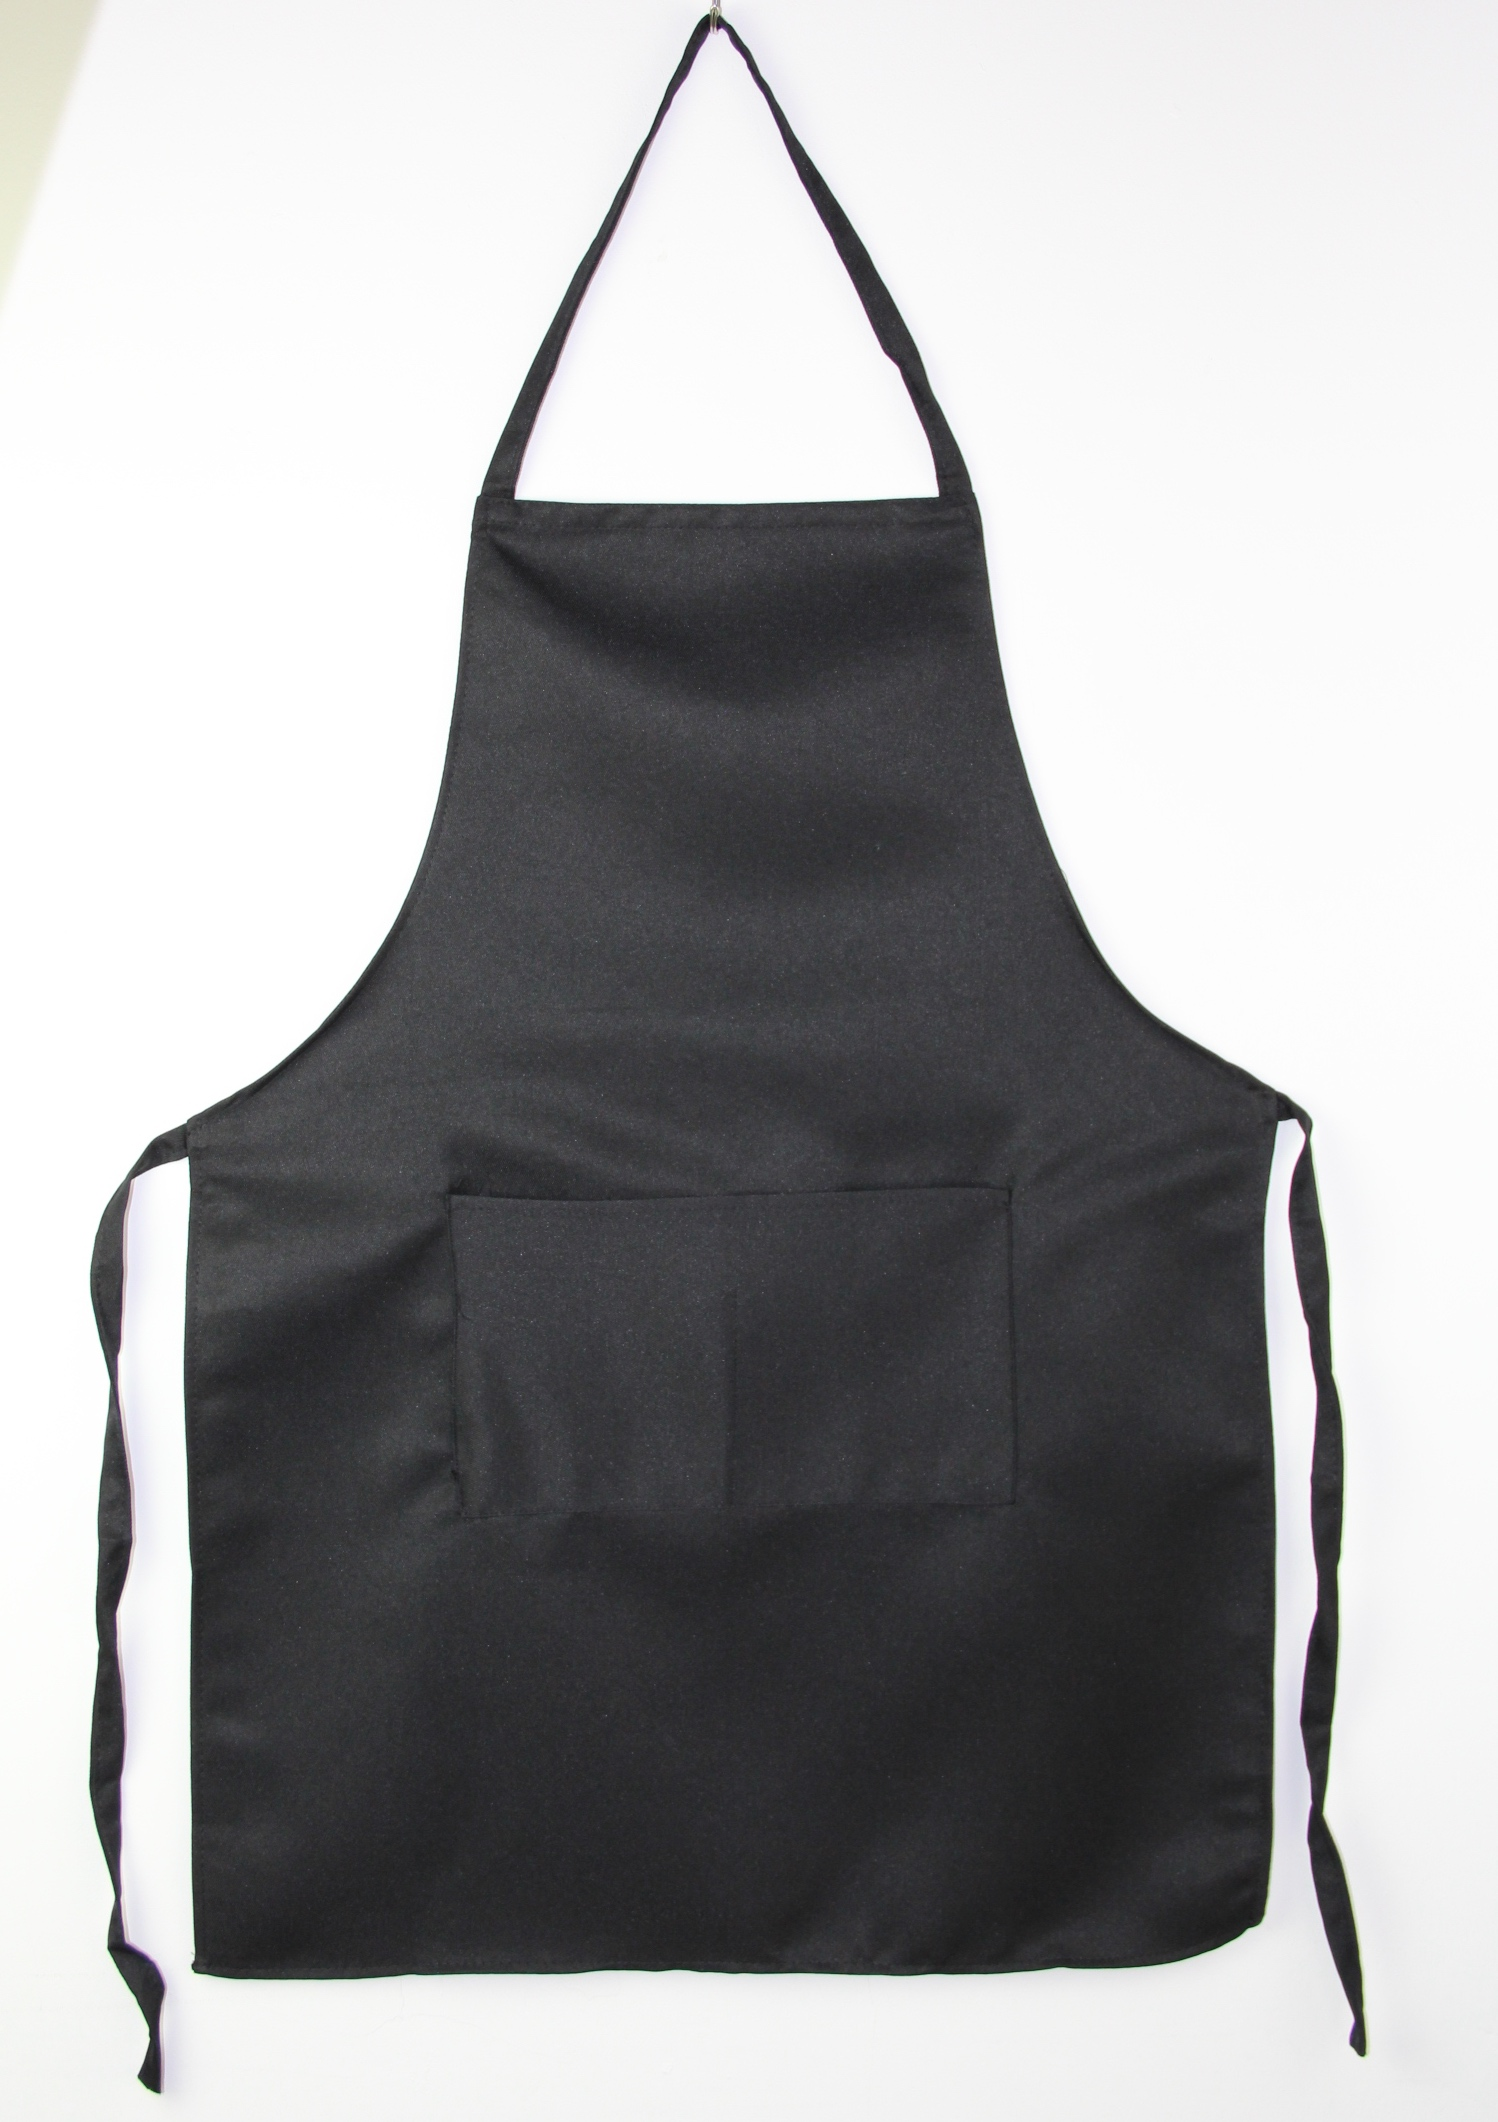 White tabard apron - Plain Unisex Cook Cooking Catering Work Chefs Waiters